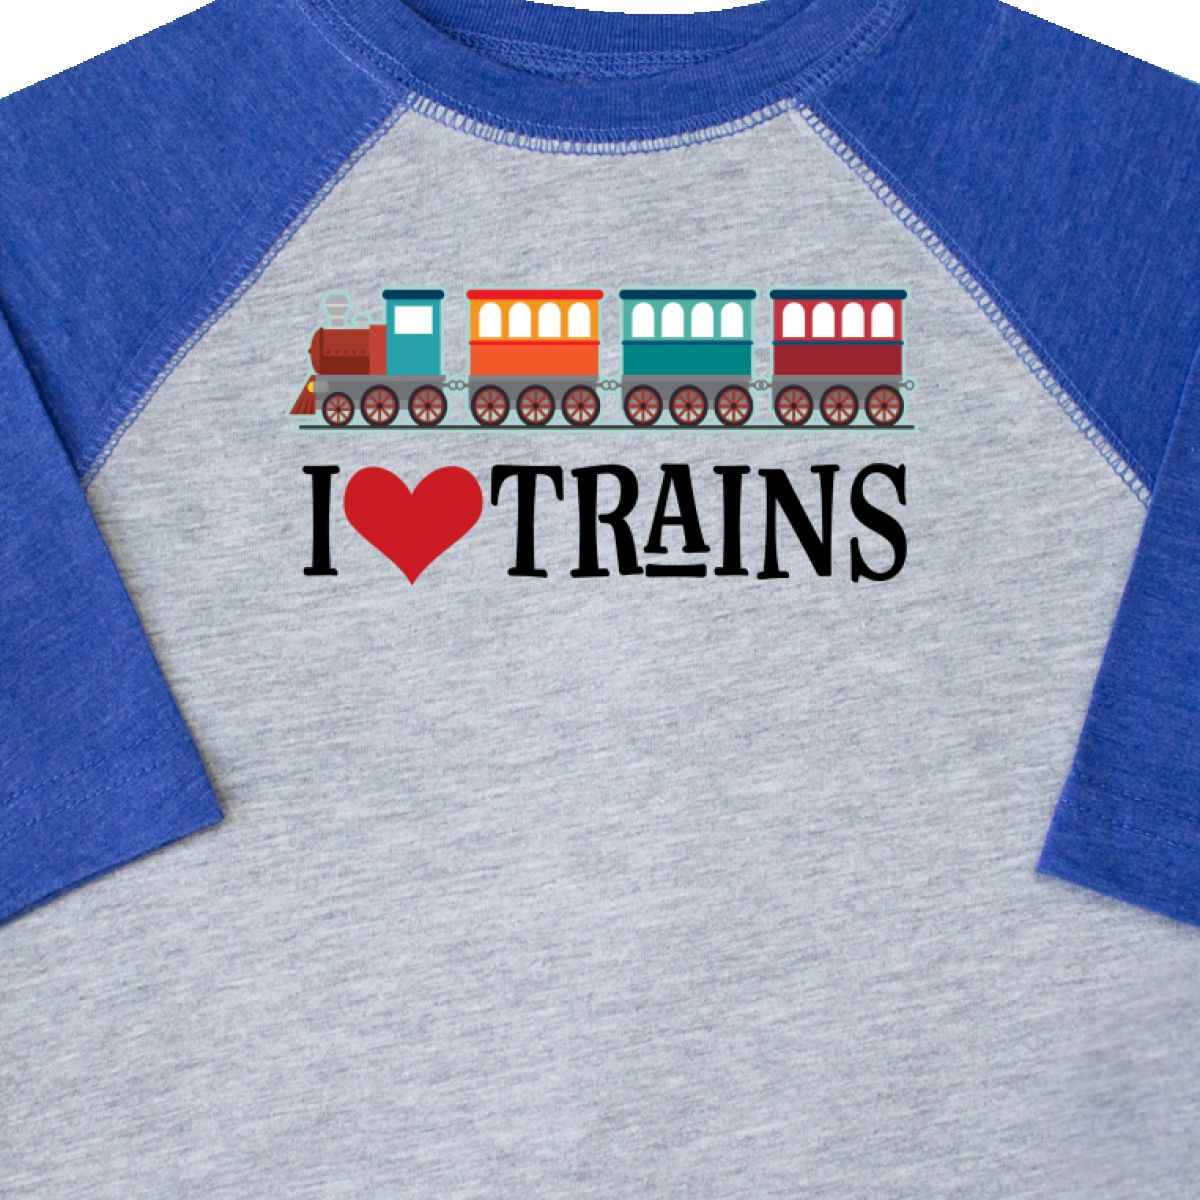 Inktastic-I-Love-Trains-Toddler-T-Shirt-Choo-Childs-Clothing-Apparel-Railfan-Set thumbnail 12